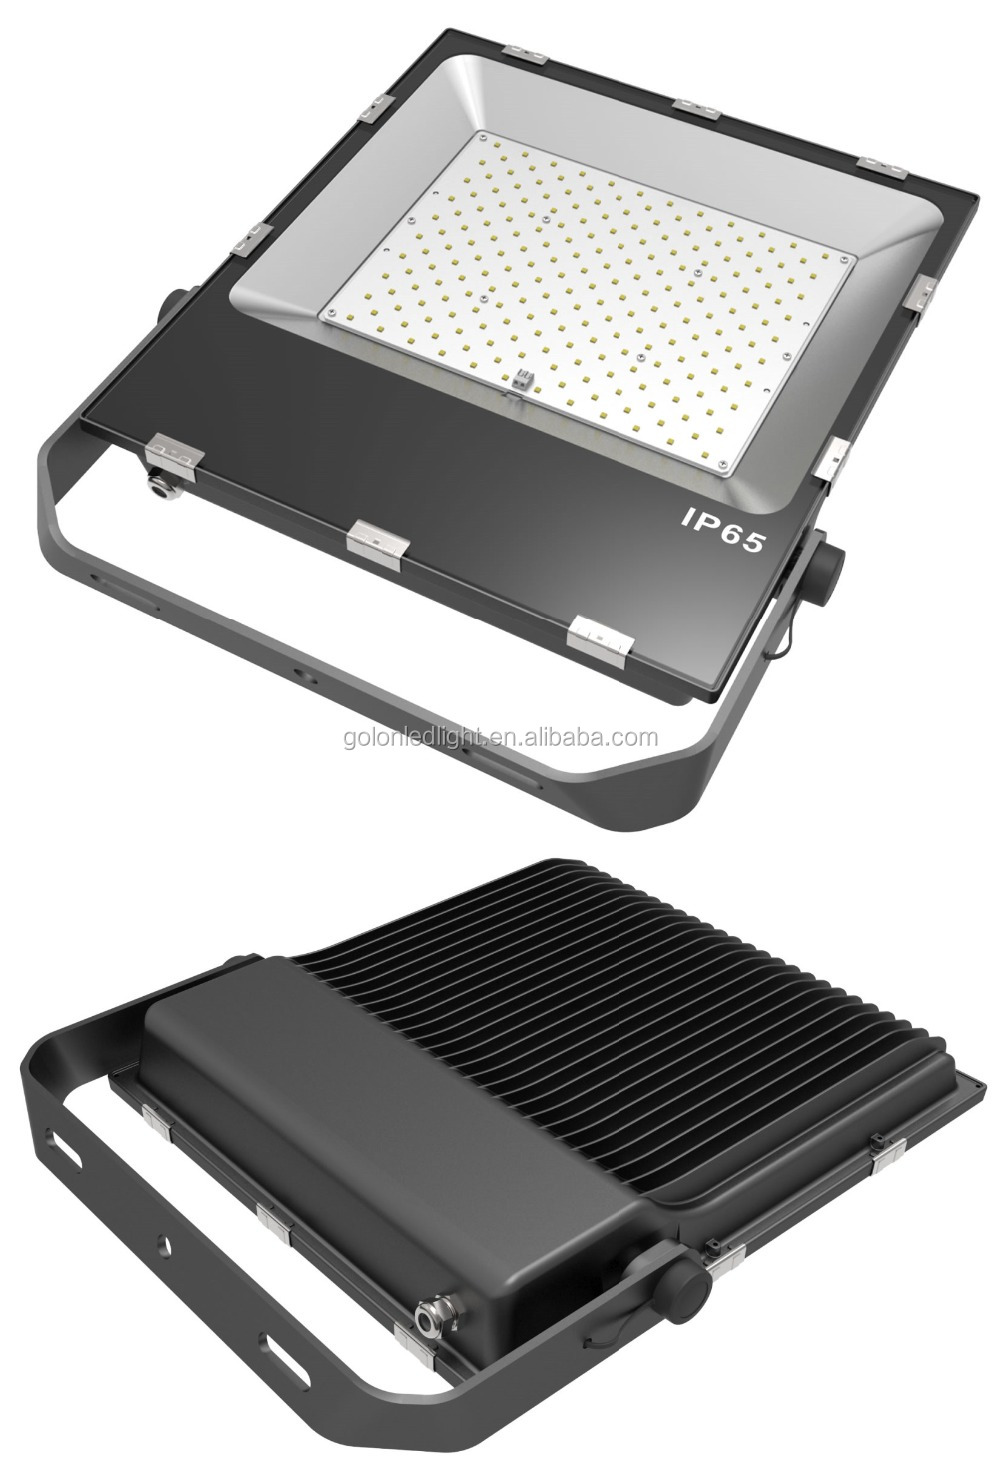 Ultra-slim sleek design Sosen Driver 200w LED Flood light with 5 years warranty PhilipsSMD3030 led replacement 1000w halogen